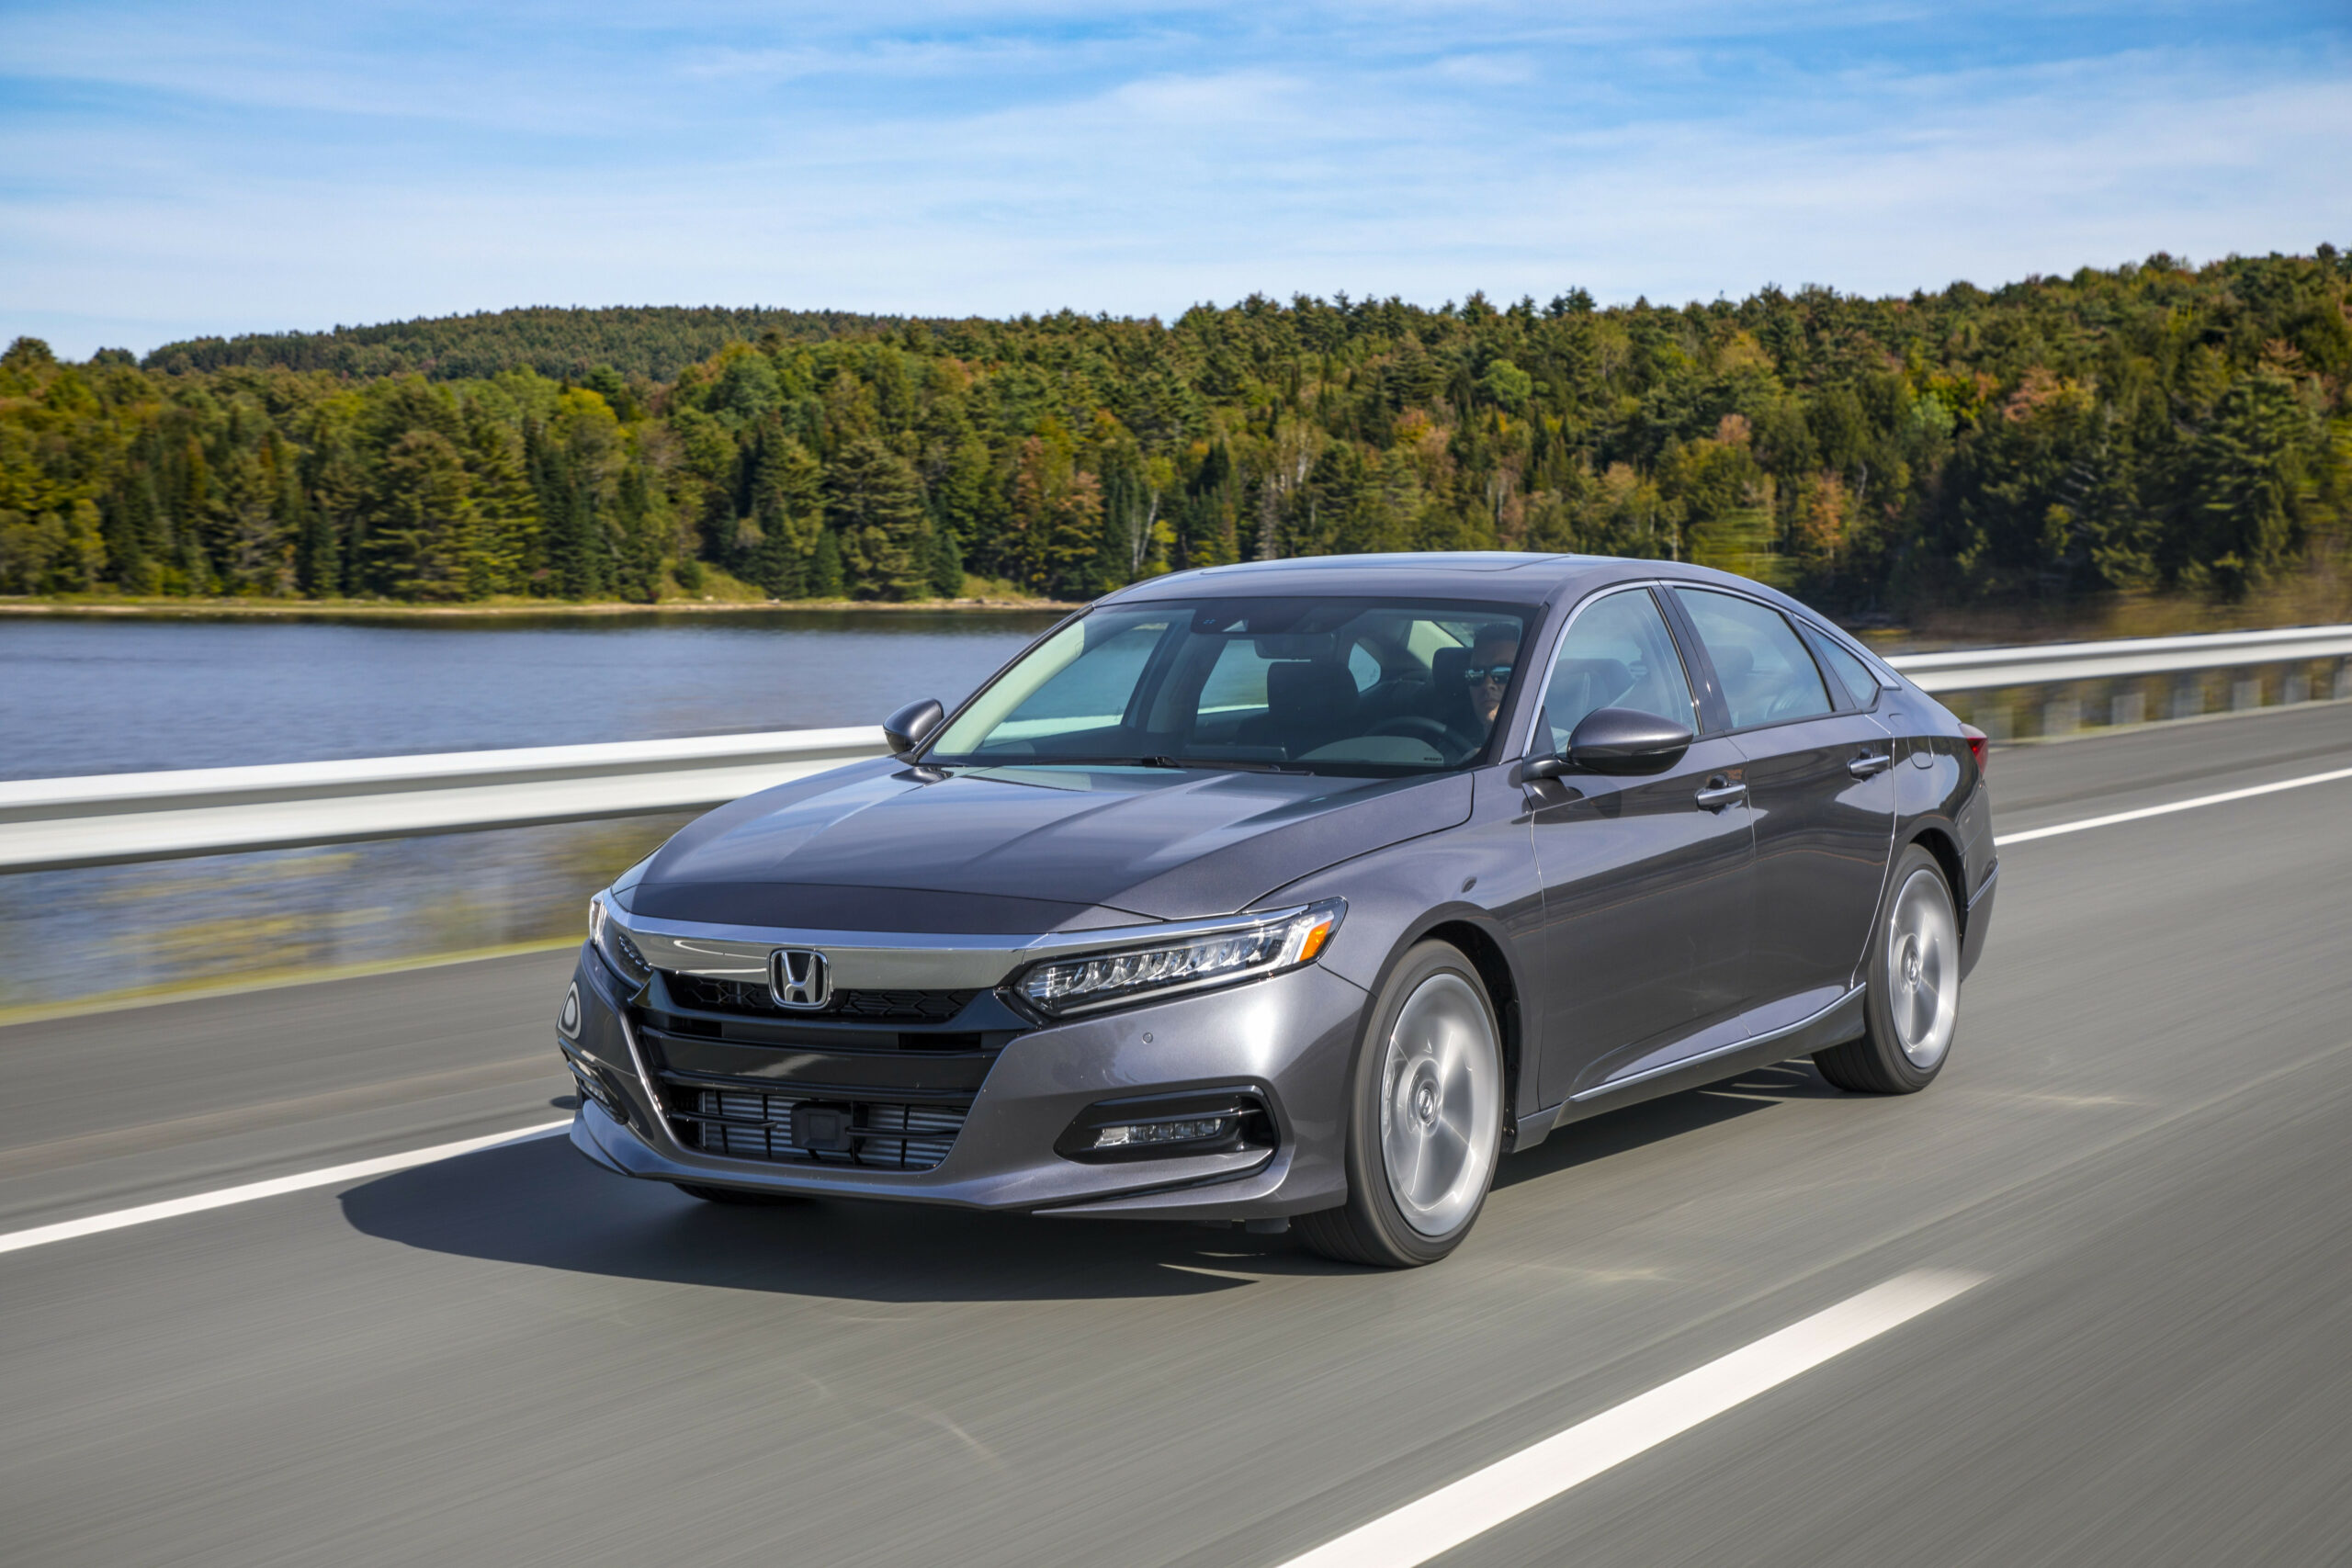 8 Honda Accord Review, Pricing, and Specs